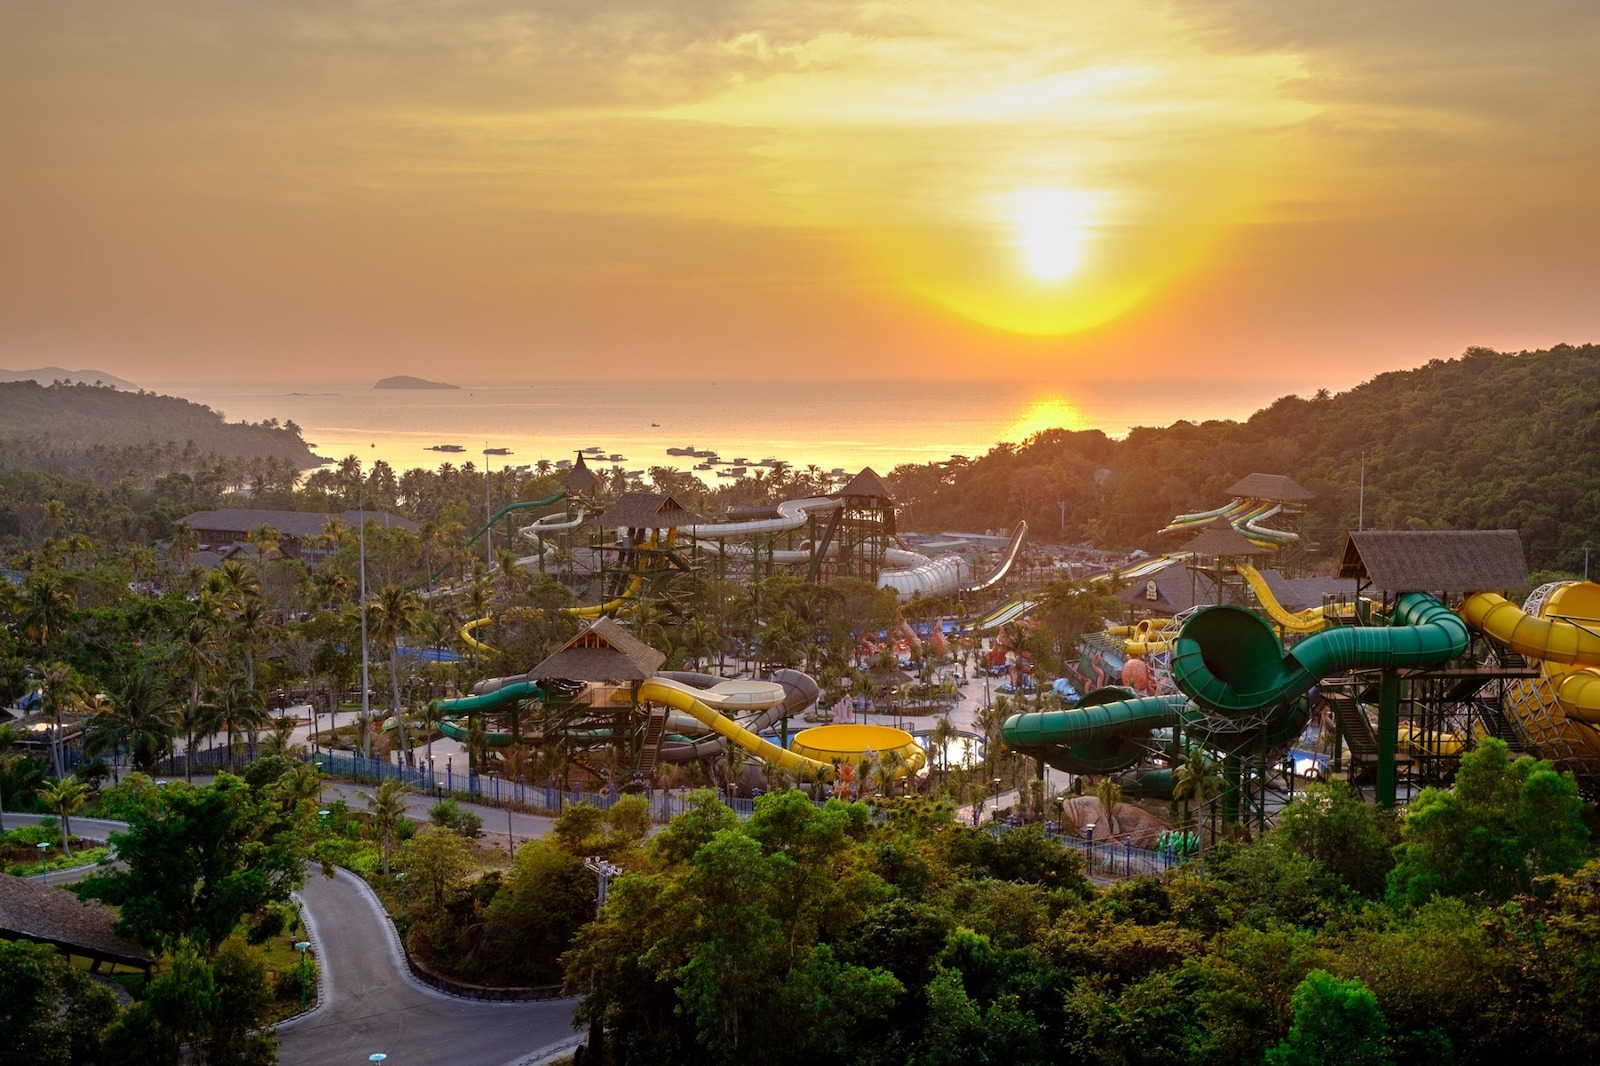 Image of the sun setting behind the waterslides at Sun World Hon Thom Nature Park